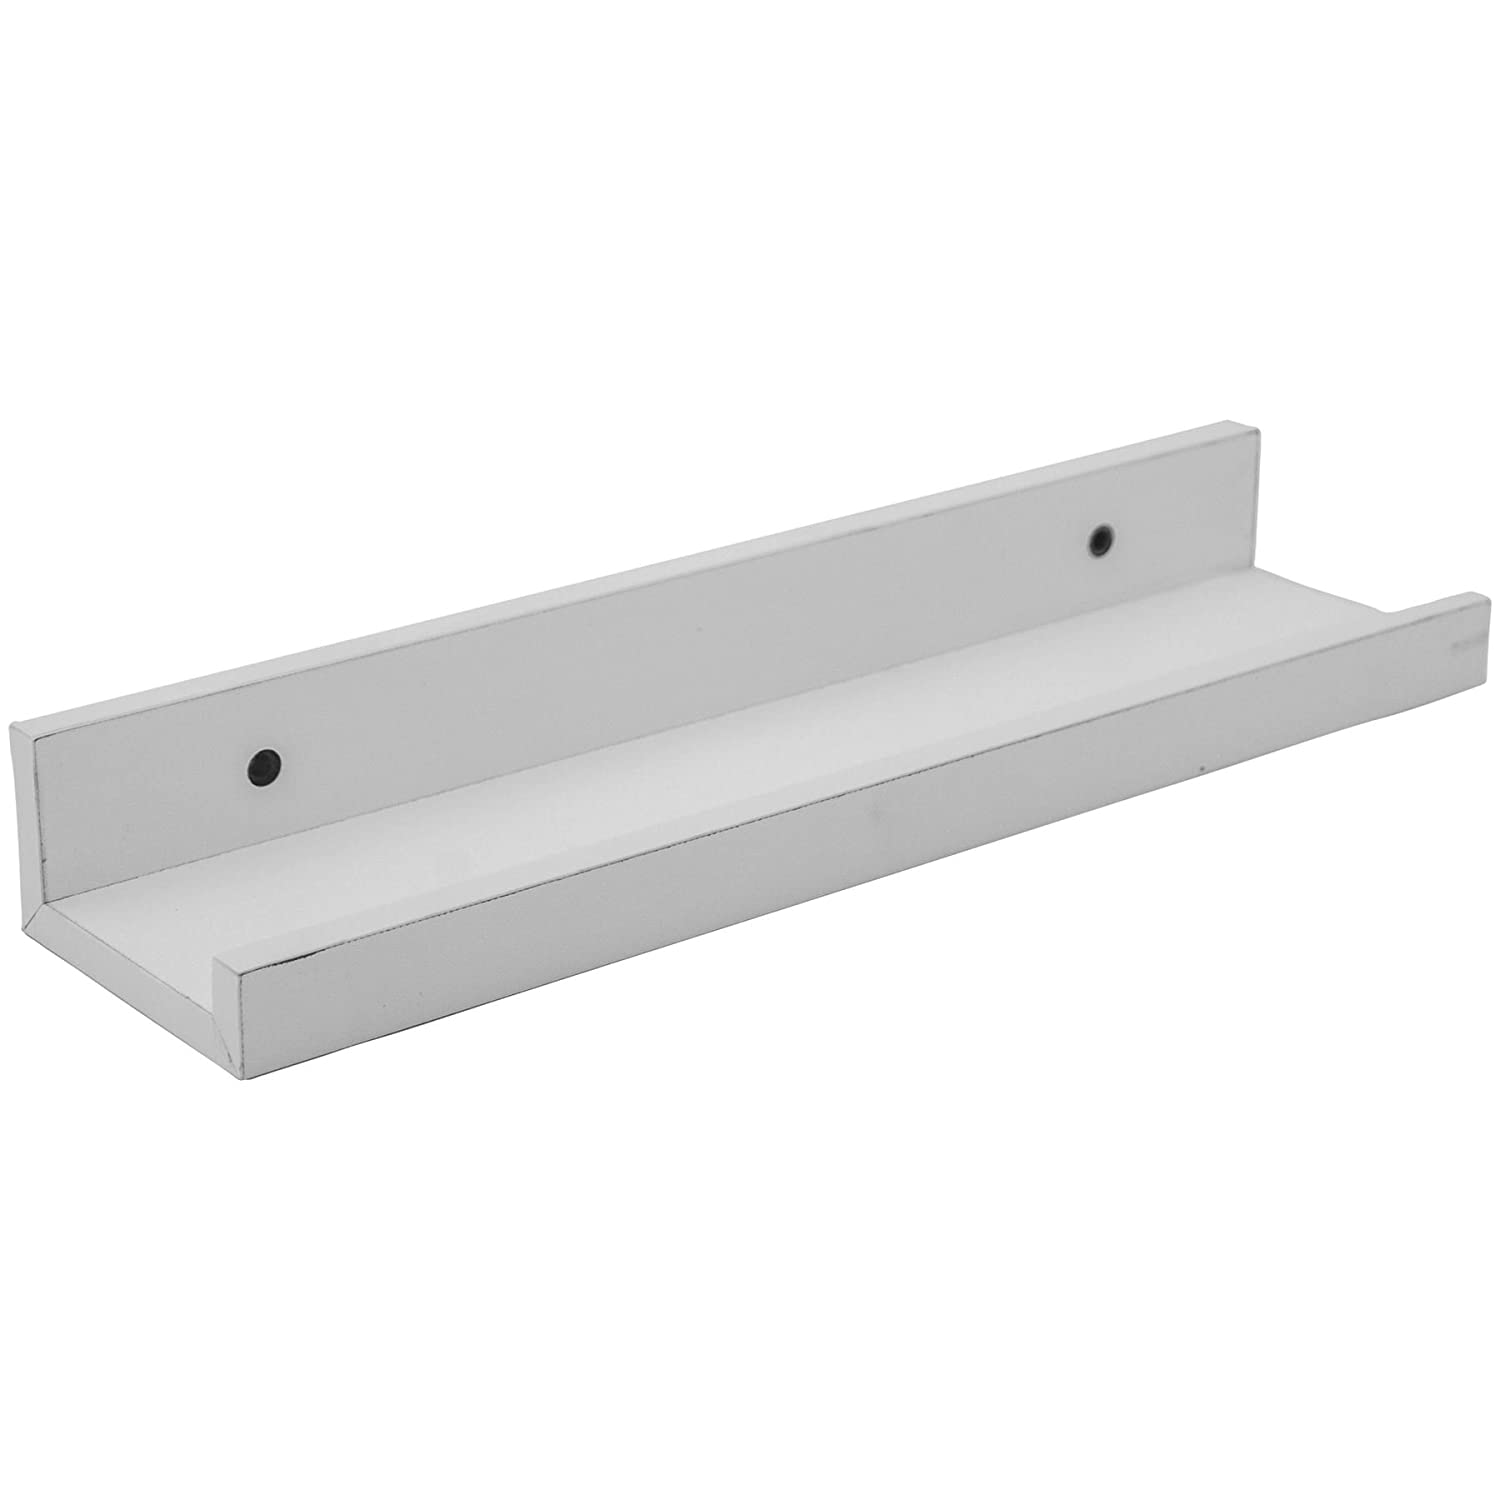 Harbour Housewares Wooden Wall Picture Ledge Shelf Shelves - 32.5cm - White